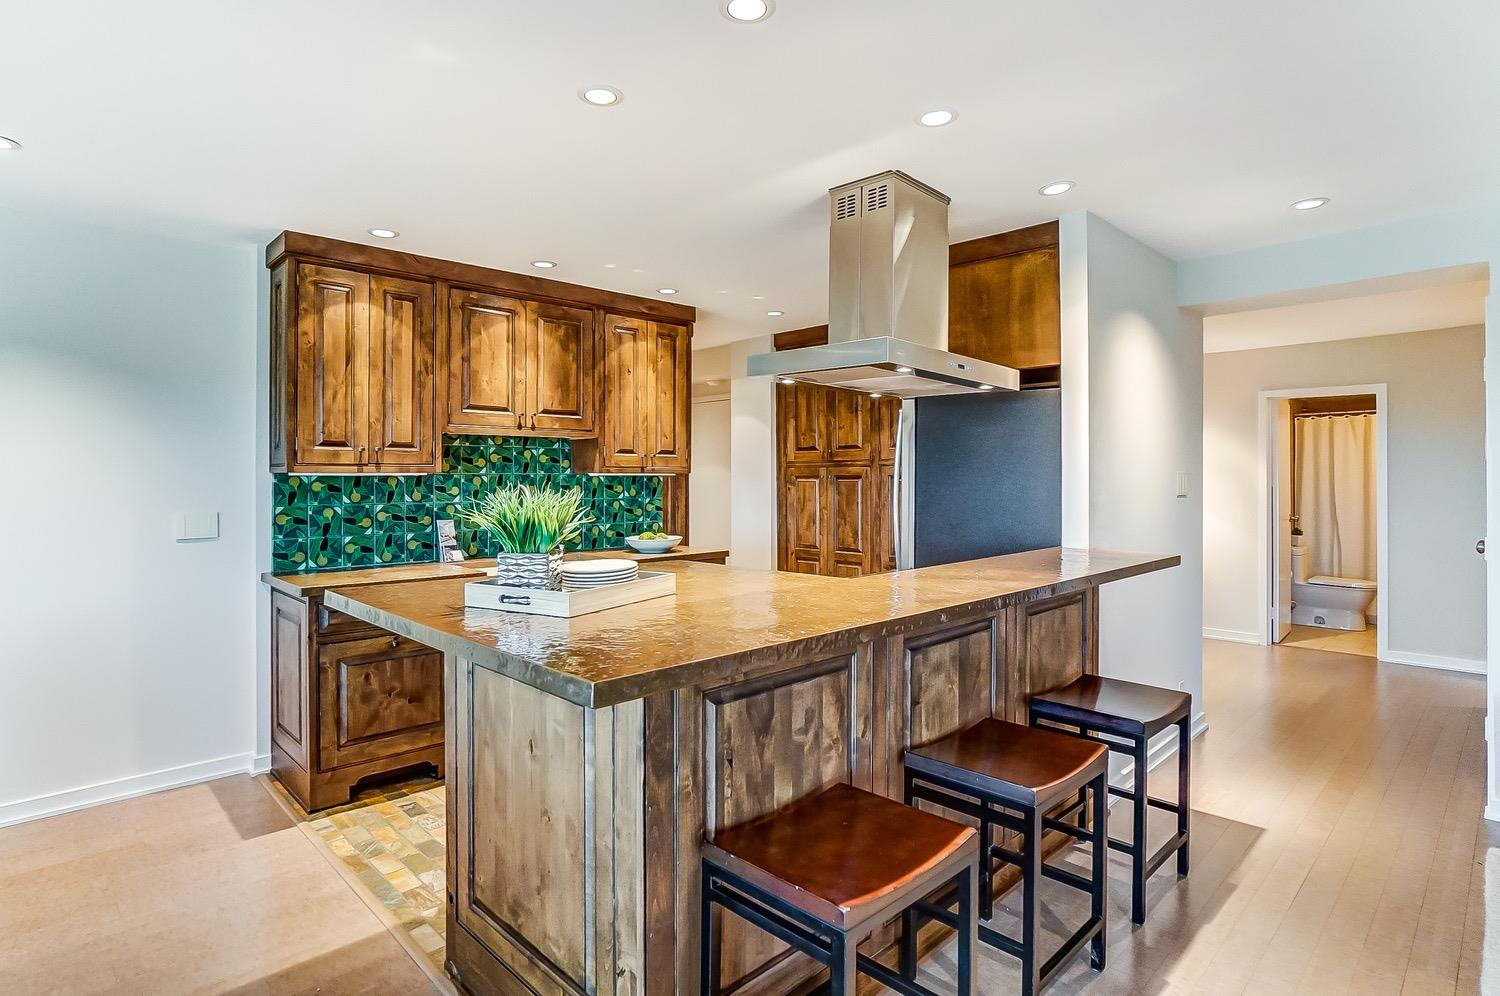 Custom kitchen with counter seating.